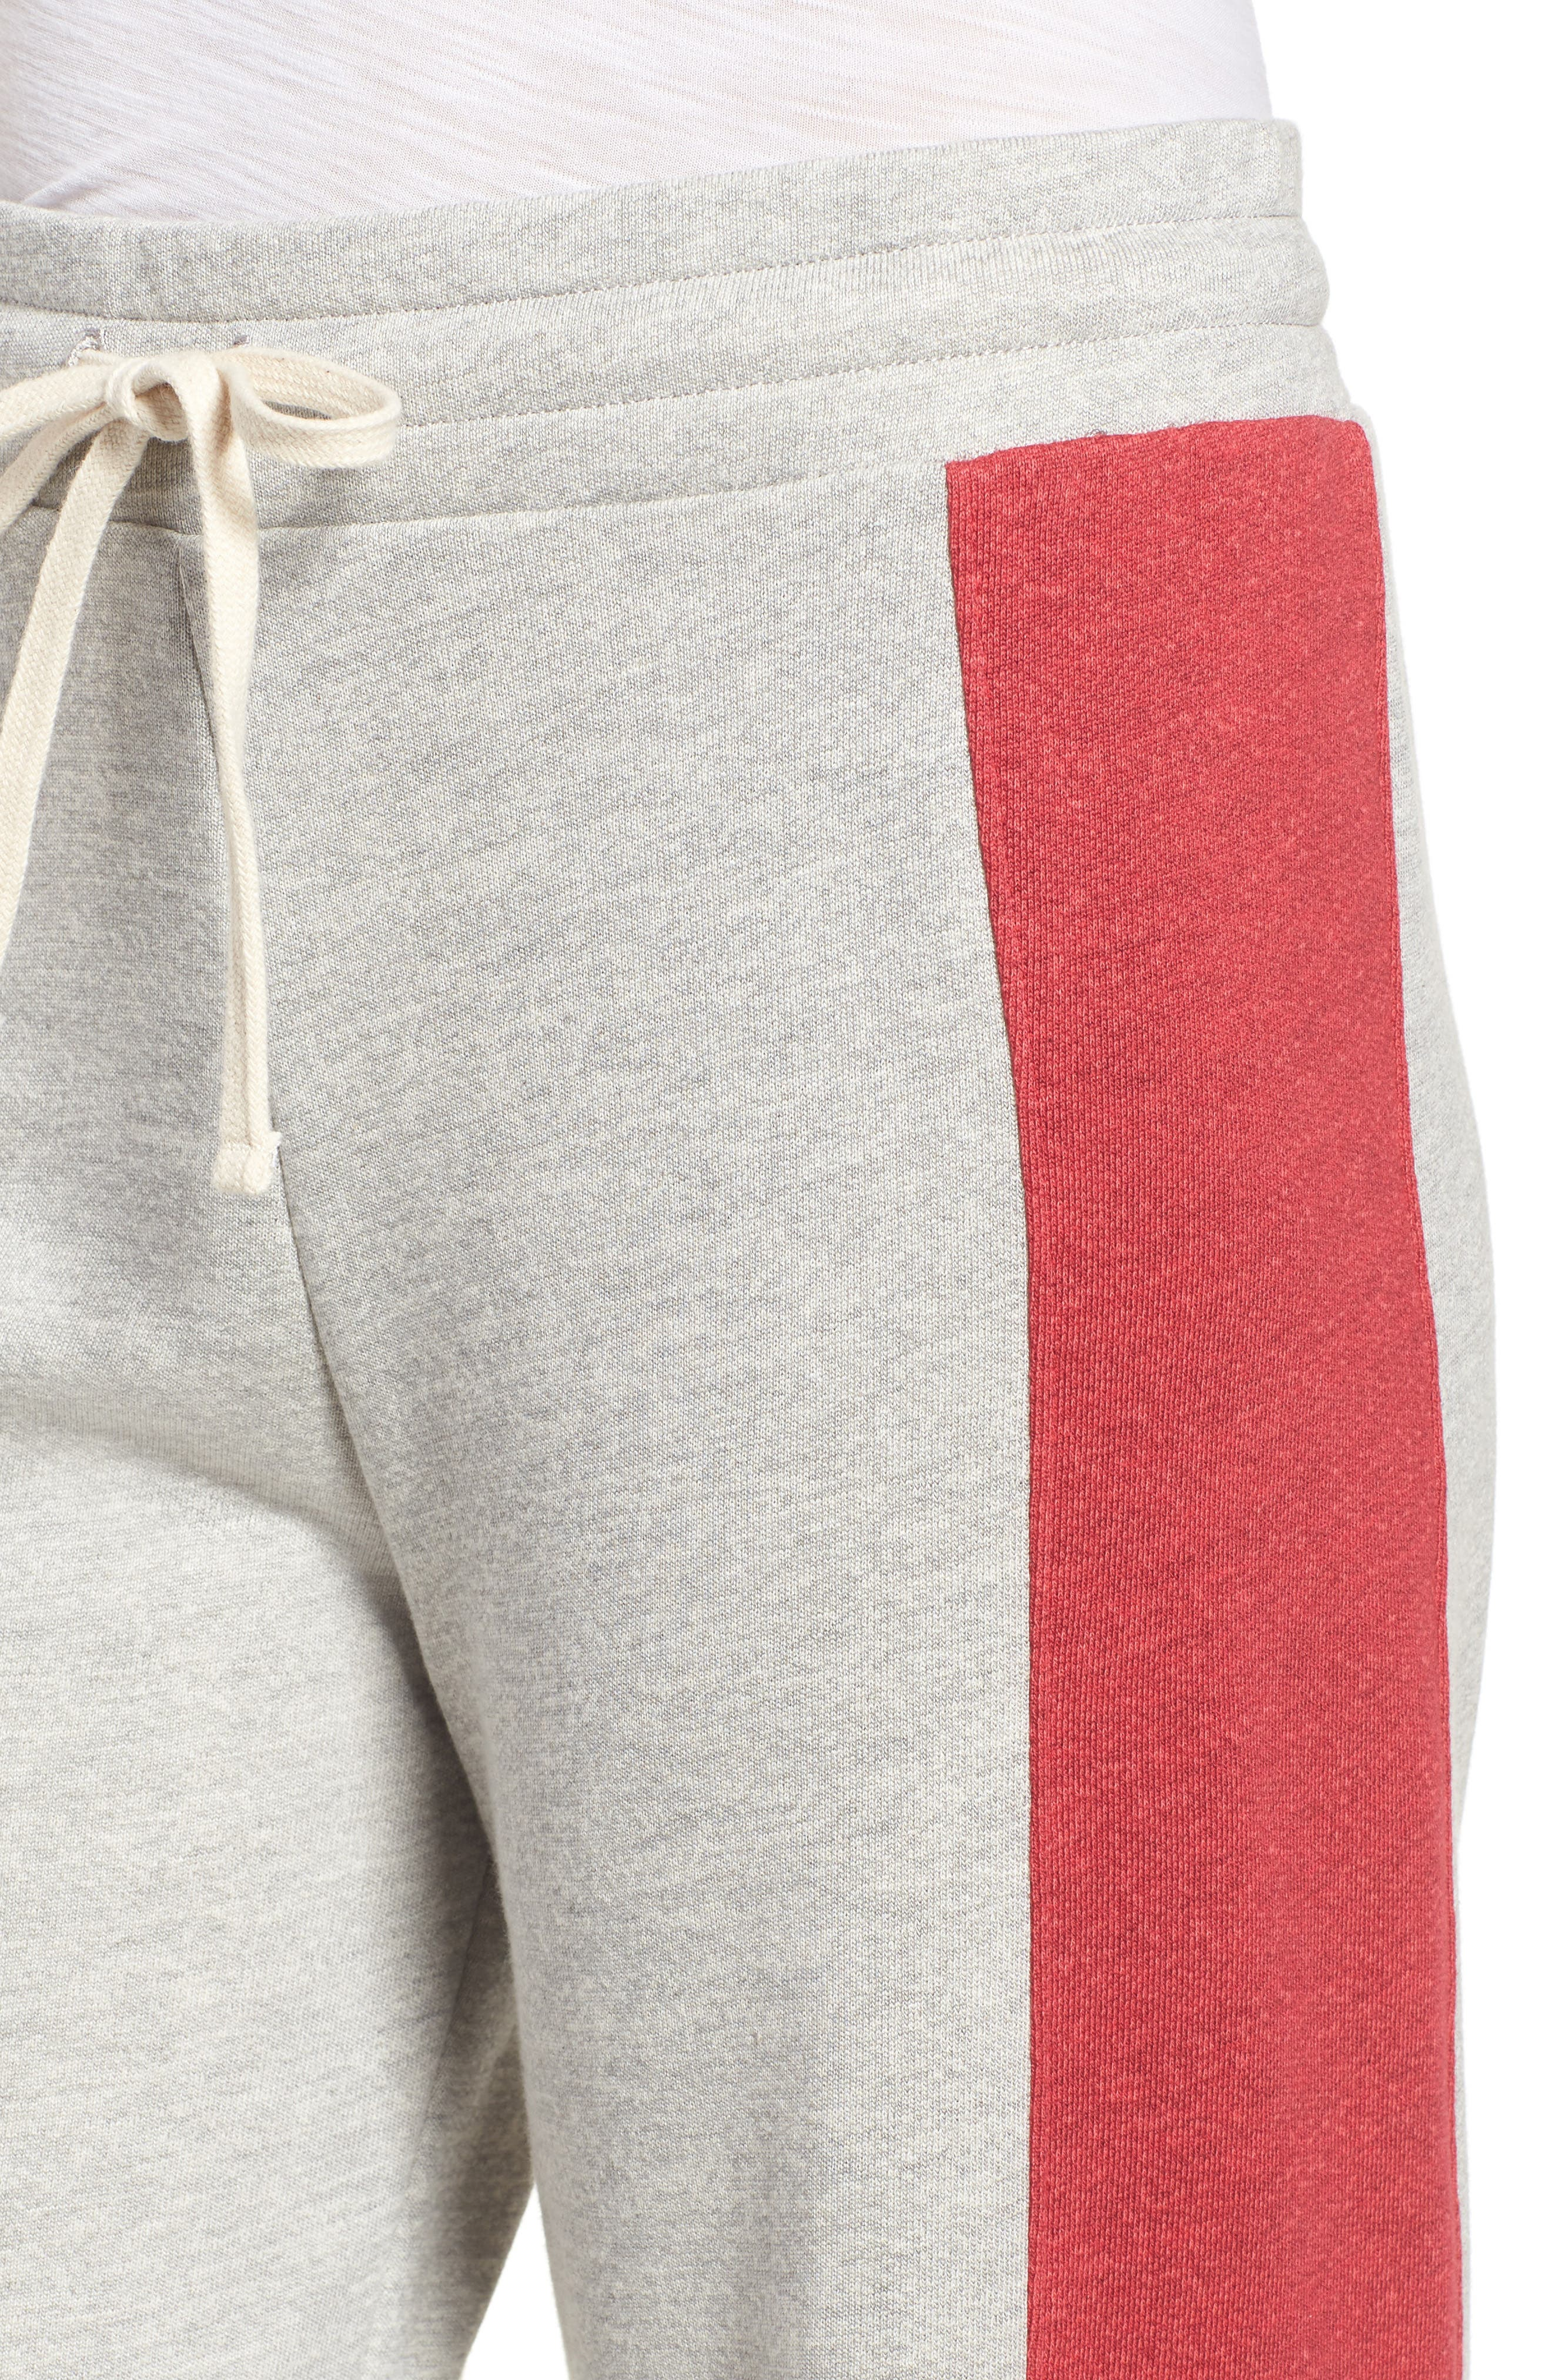 Terry Colorblock Sweatpants,                             Alternate thumbnail 4, color,                             Heather Grey